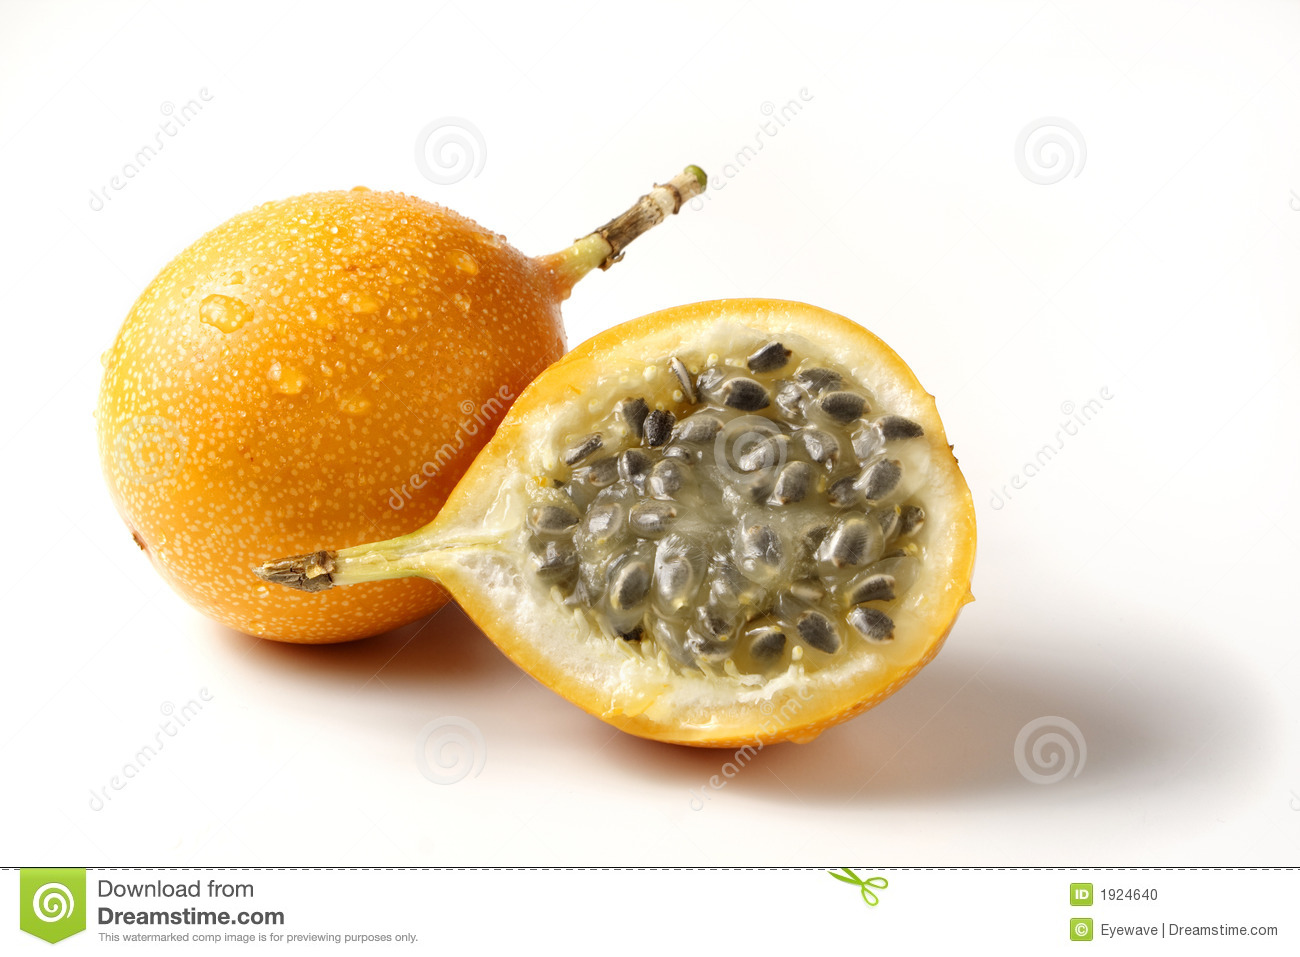 how to eat passion fruit without seeds